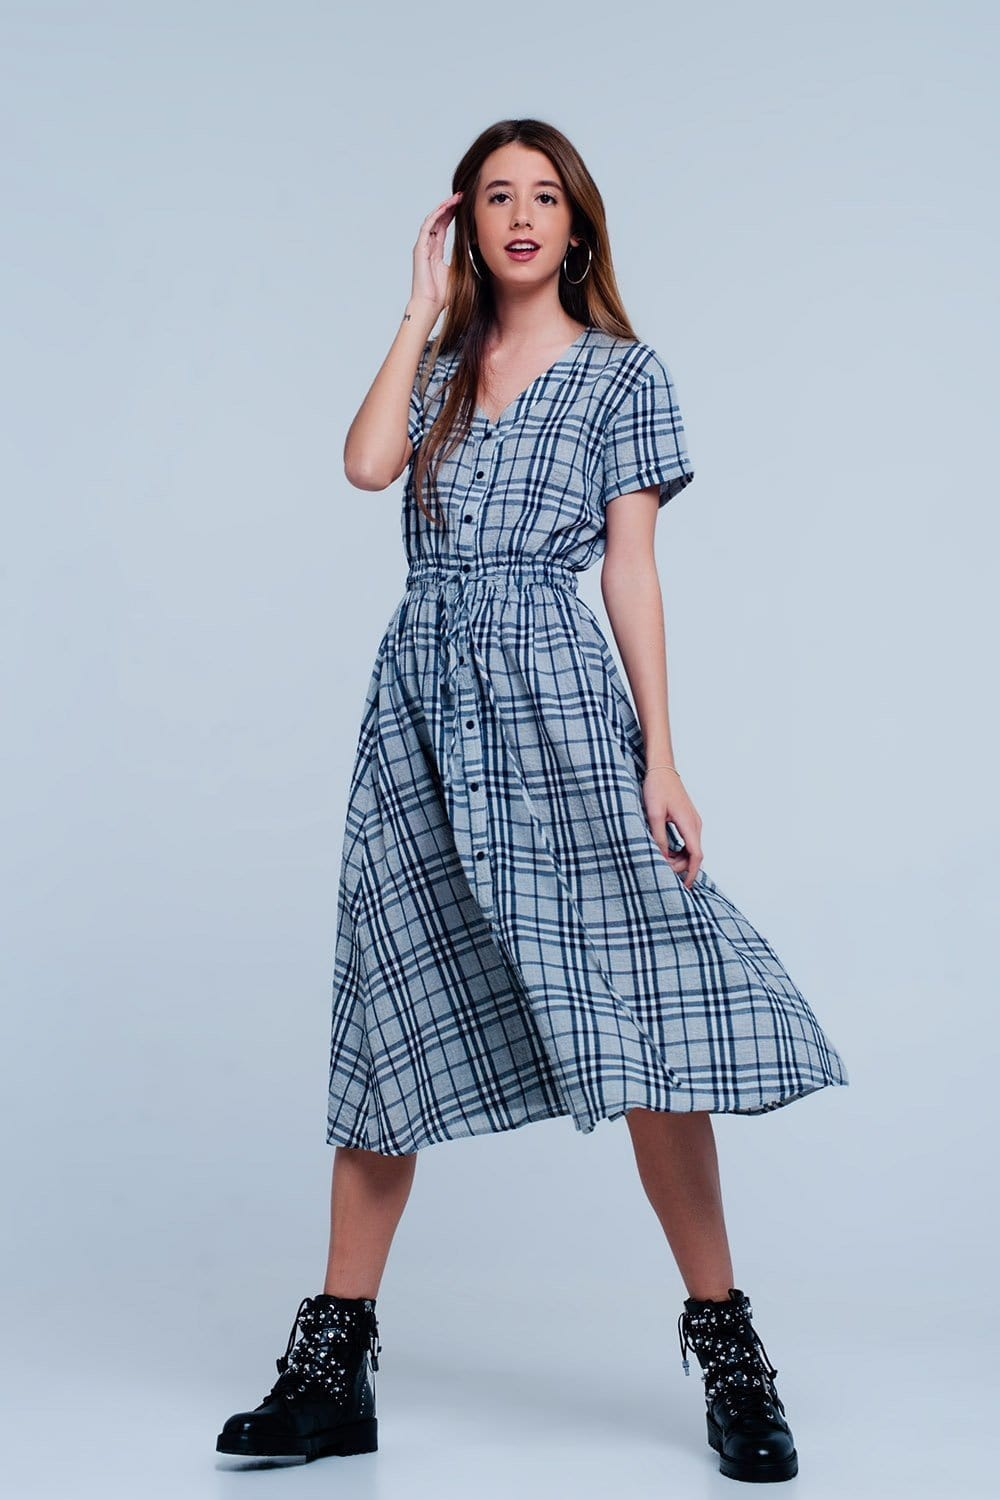 Q2 Maxi dress with gray checkers